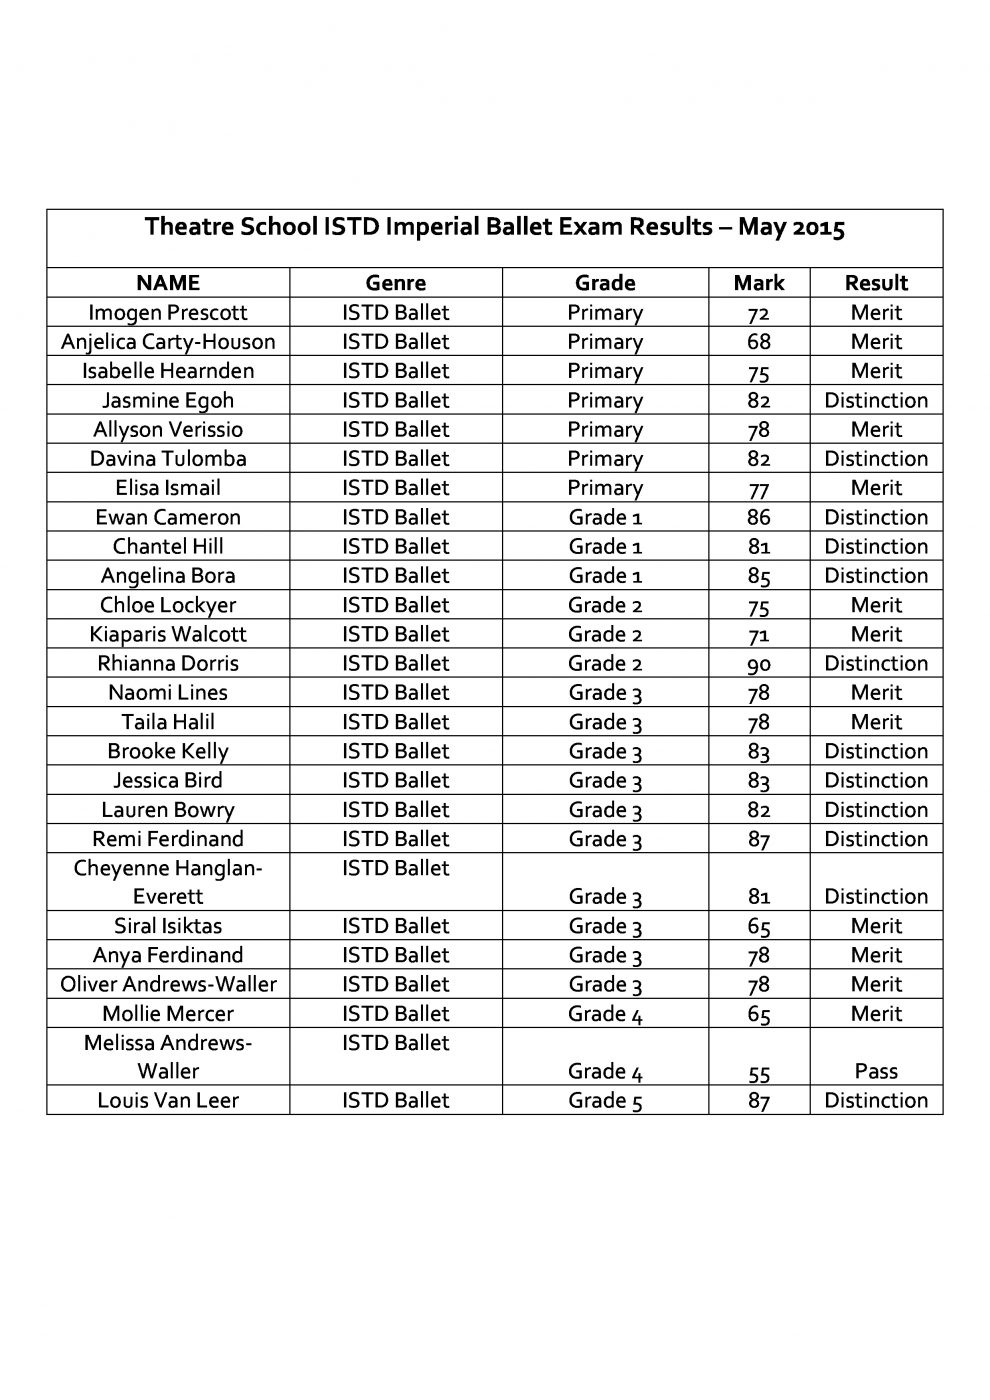 ISTD Theatre School Ballet Exam Results – May 2015